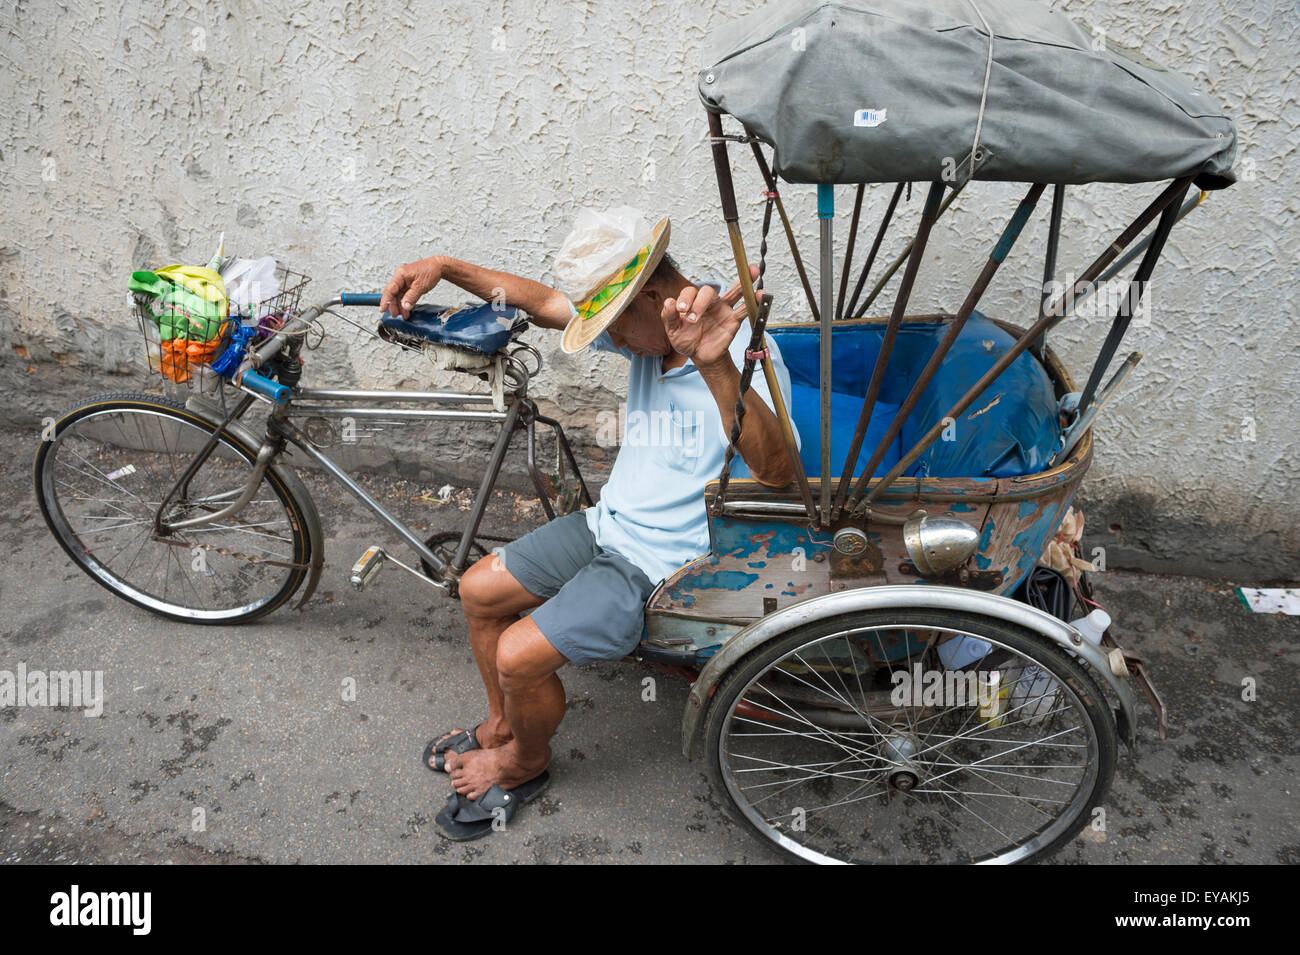 CHIANG MAI, THAILAND - NOVEMBER 07, 2014: Driver of a traditional bicycle rickshaw takes a nap on a quiet side street. - Stock Image